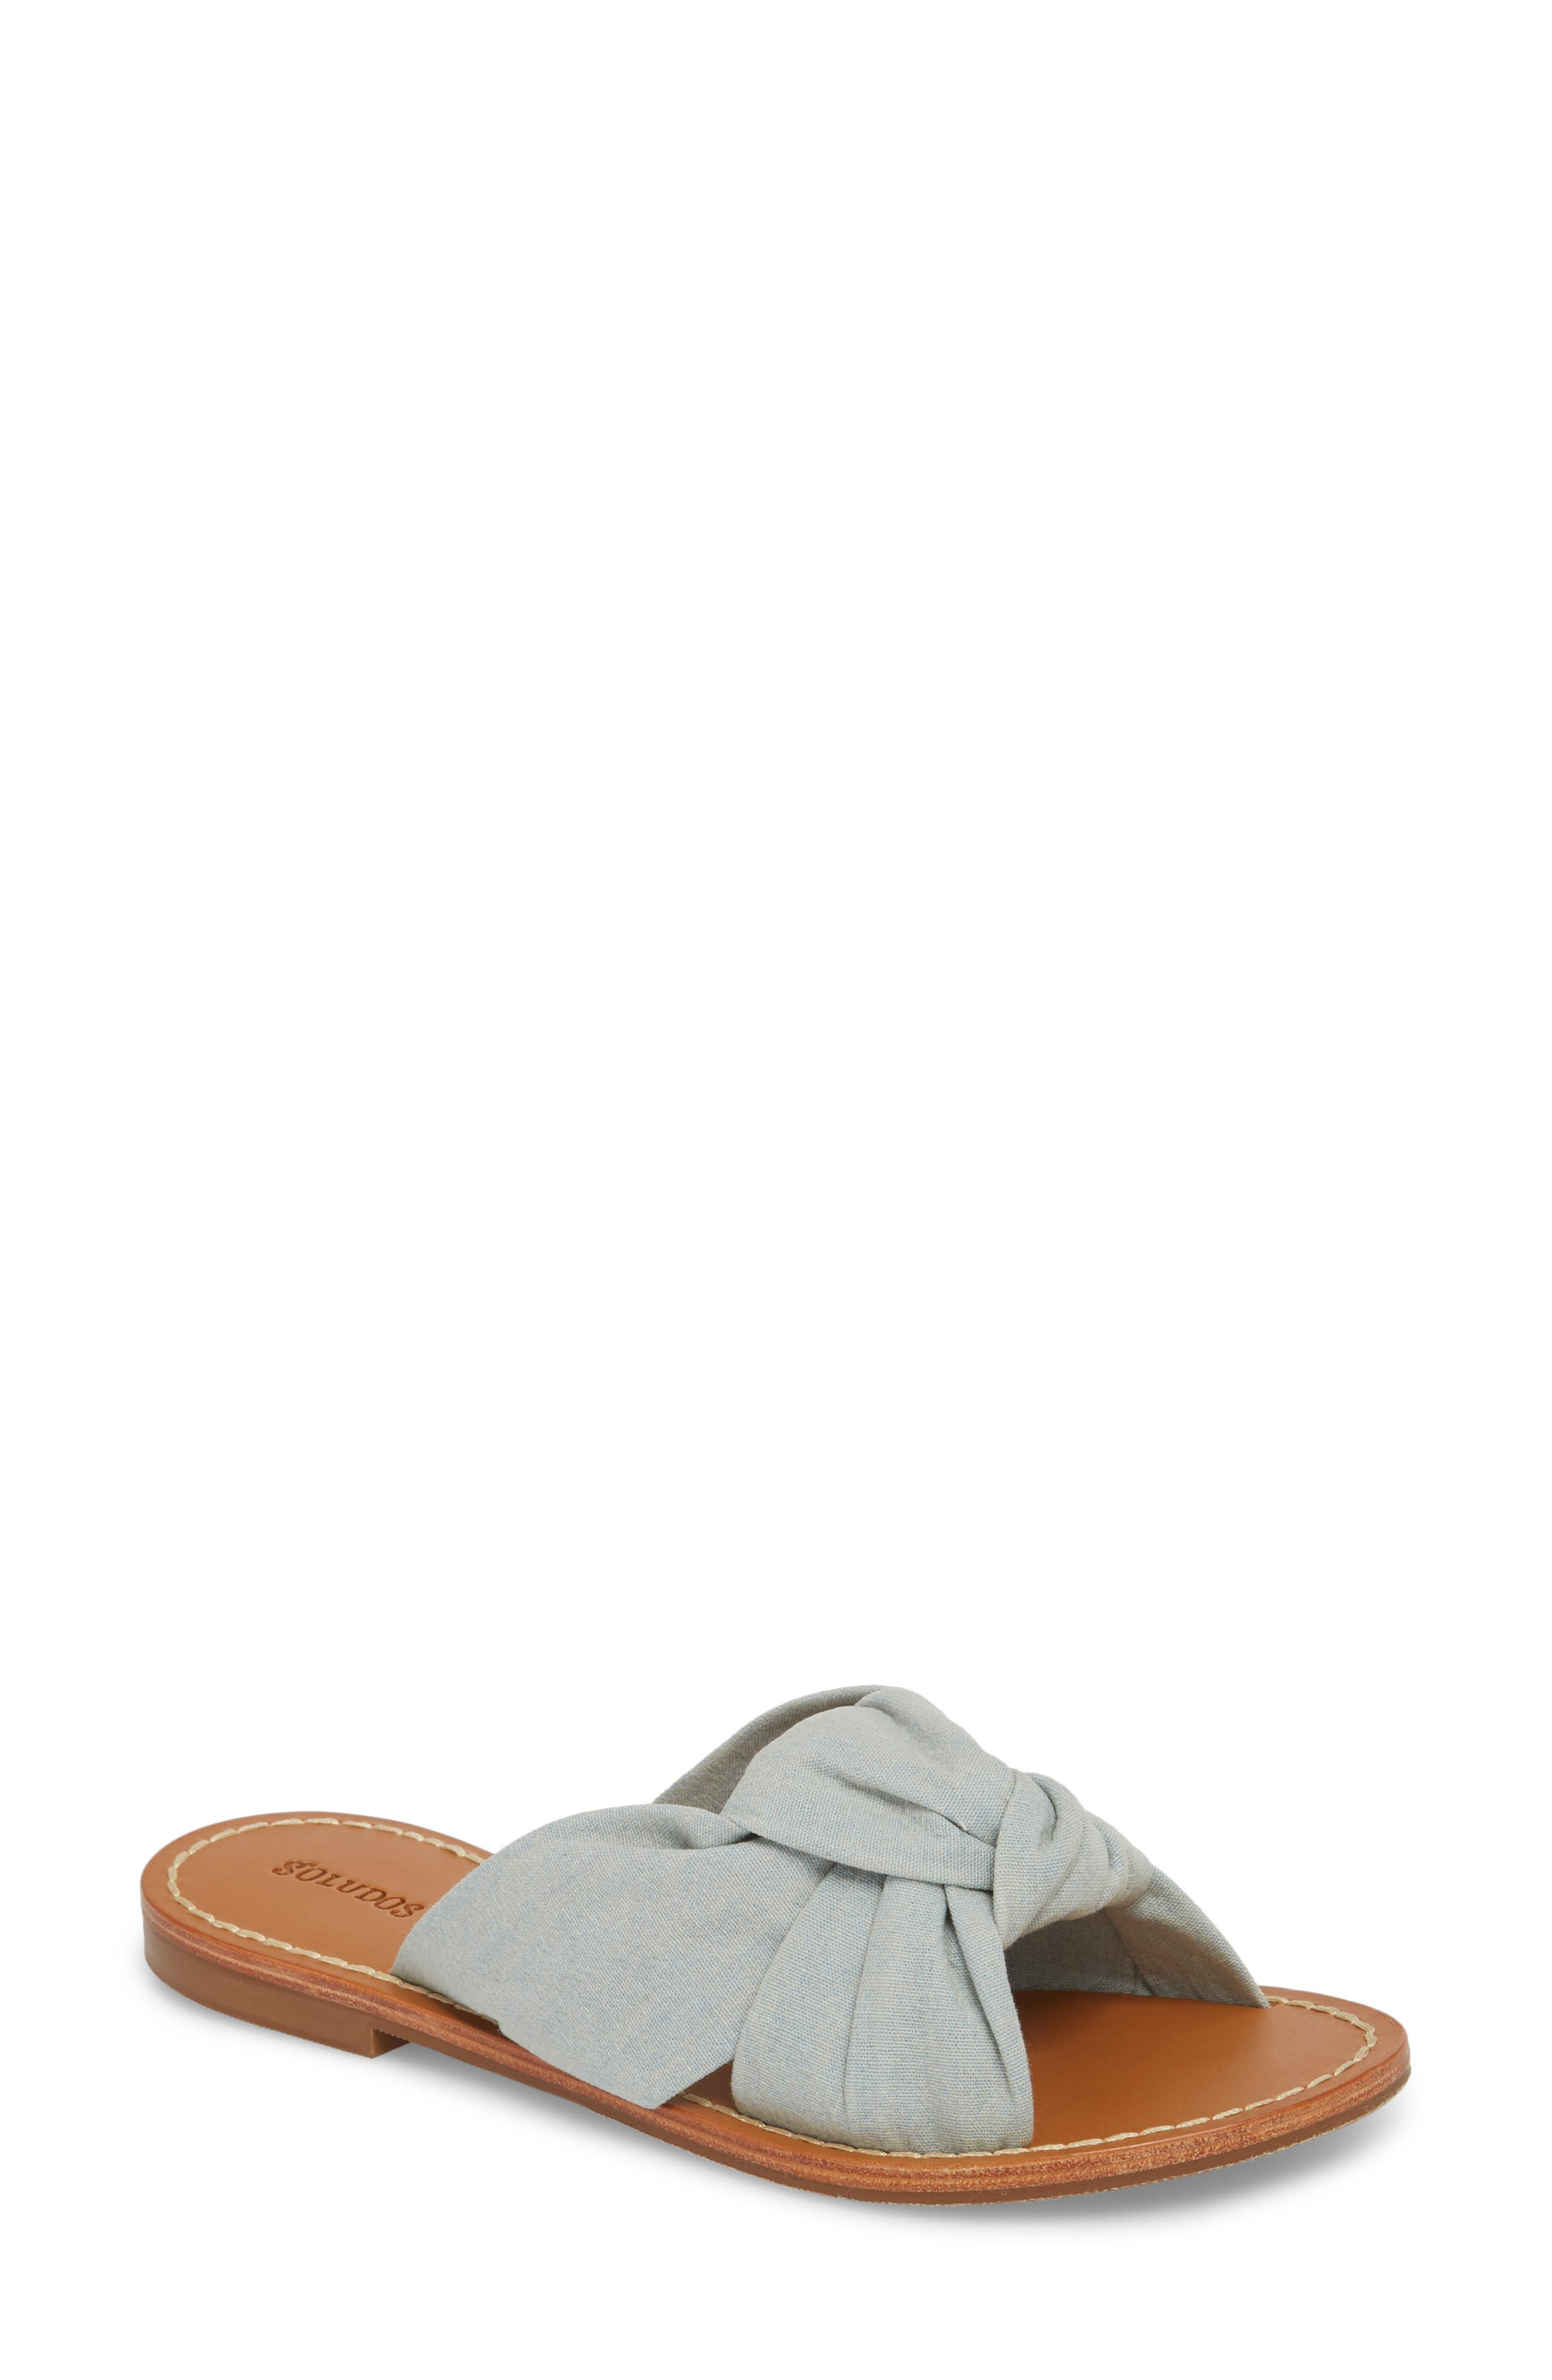 Knotted Slide Sandal,                         Main,                         color, Chambray